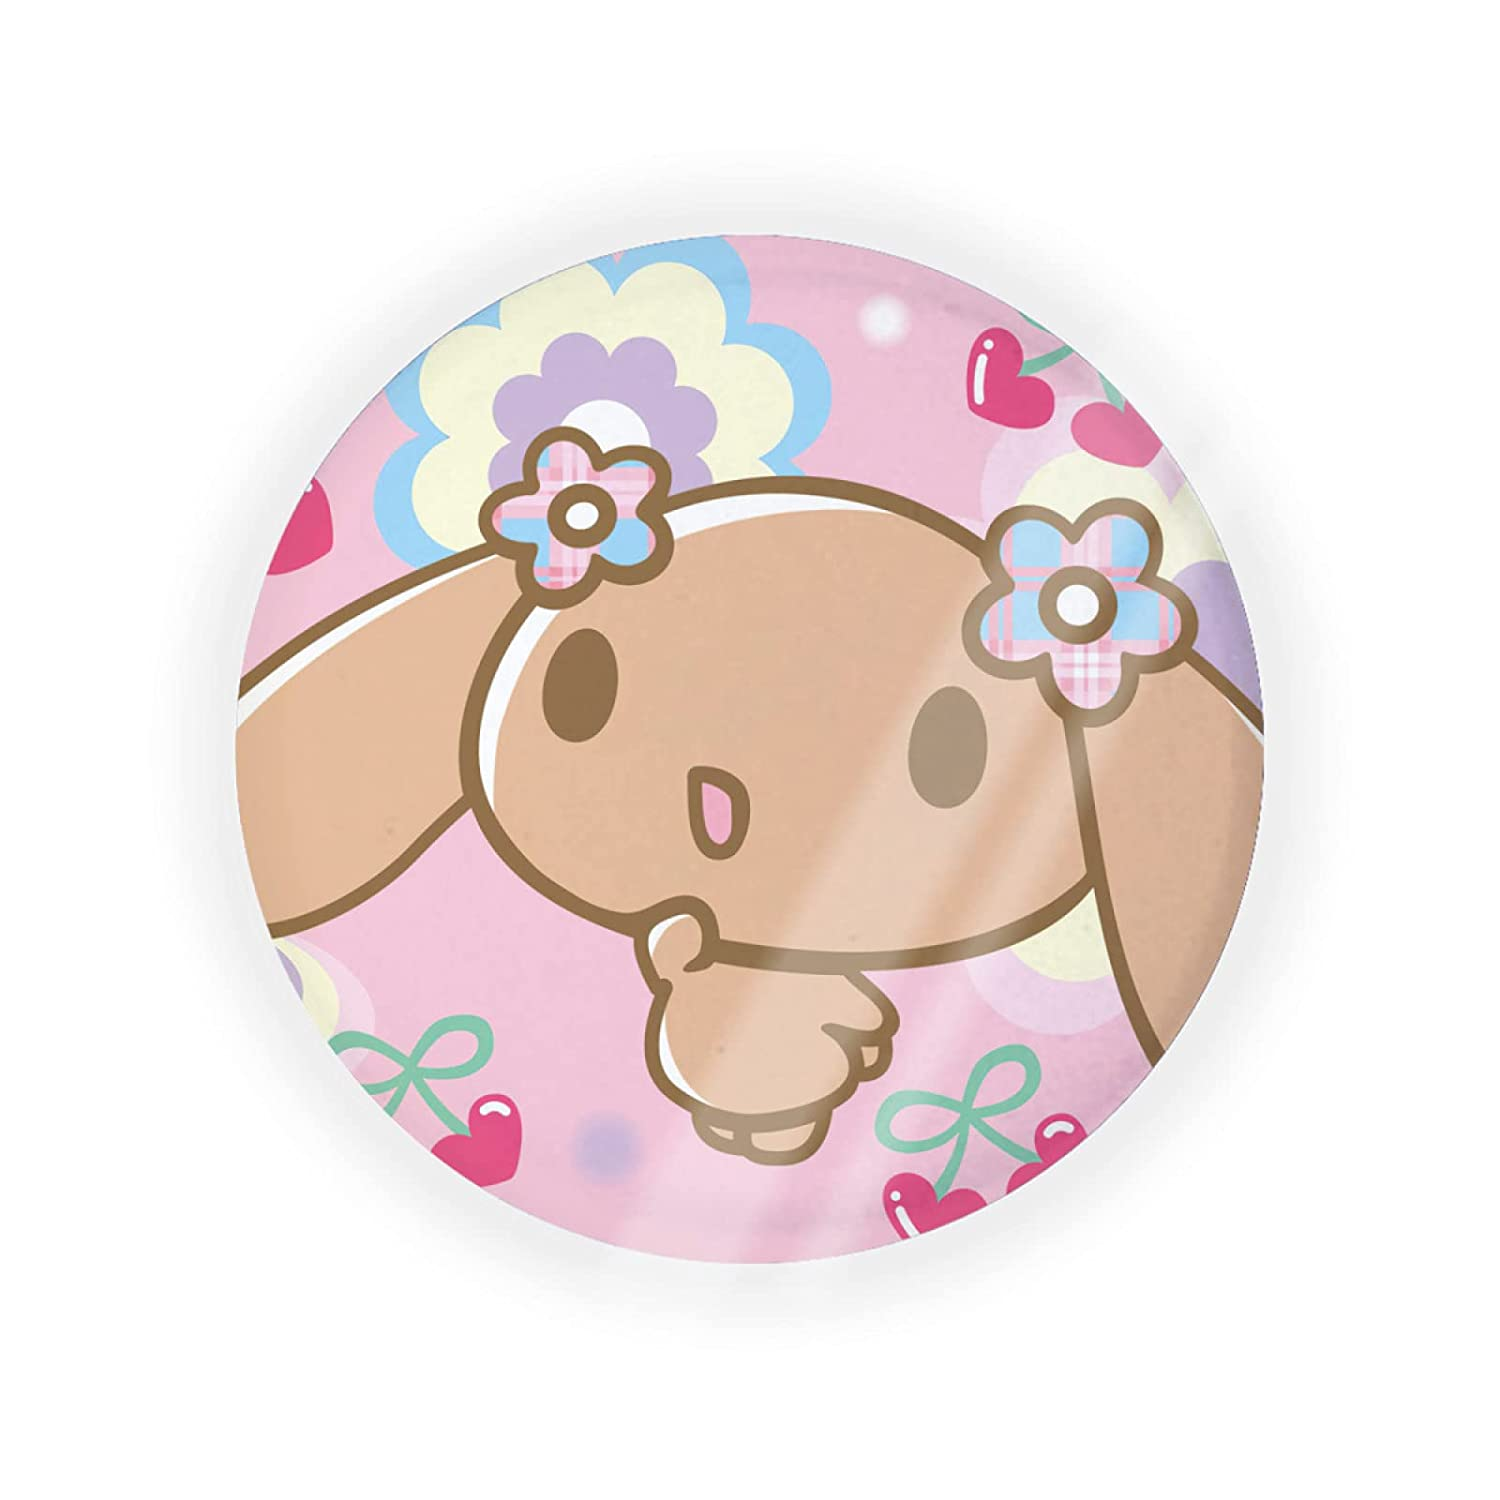 Yunlenb All stores are sold Cinnamoroll Bargain sale Portable Make-up Cushio Container Air Powder